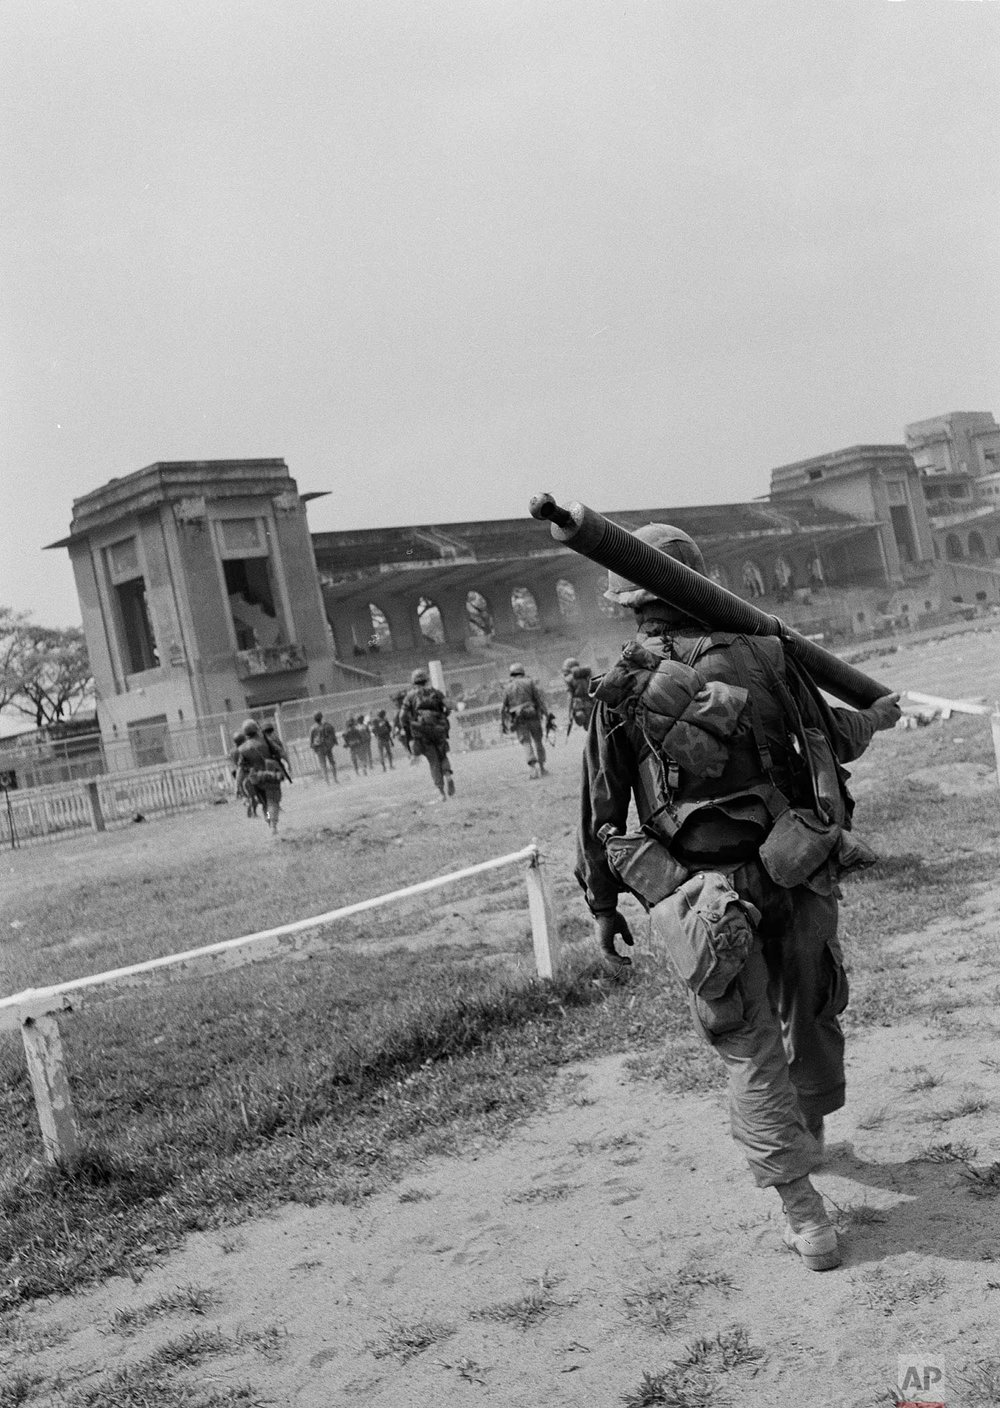 U.S. troops of the 199th Light Infantry Brigade march toward the grandstand after they were lifted to the Phu Tho racetrack in Saigon, South Vietnam, during the Tet Offensive, Feb. 9, 1968. They are there to help South Vietnamese force in routing the Viet Cong out of Saigon's Chinese district. The trooper in the foreground carries a mortar tube. (AP Photo)